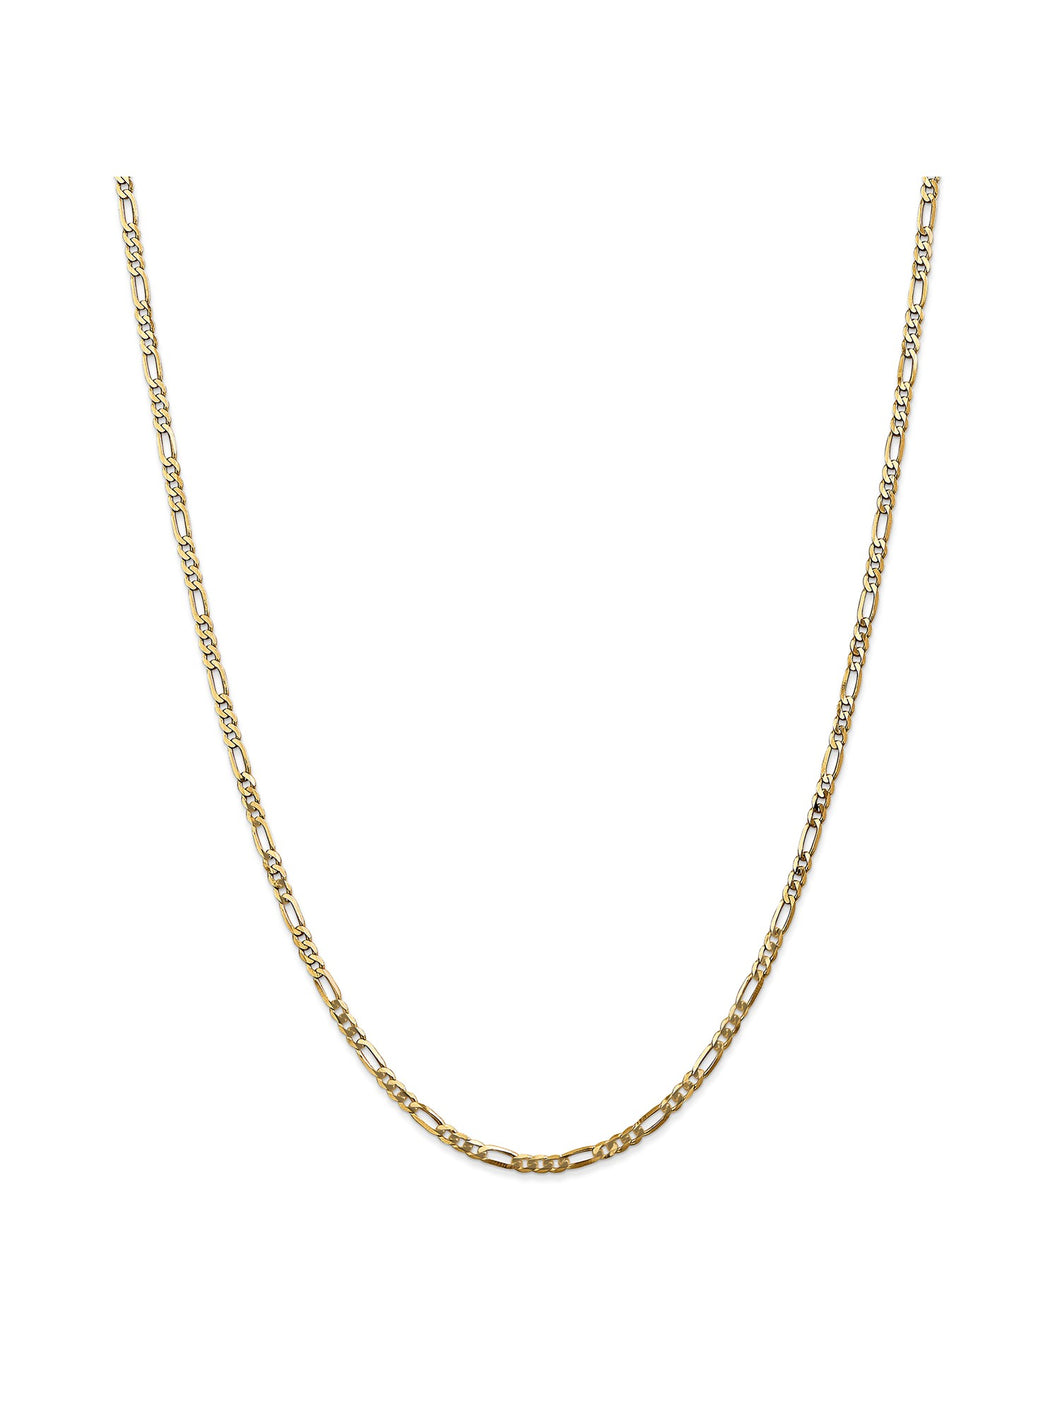 14k Yellow Gold 2.75mm Flat Figaro Chain Necklace